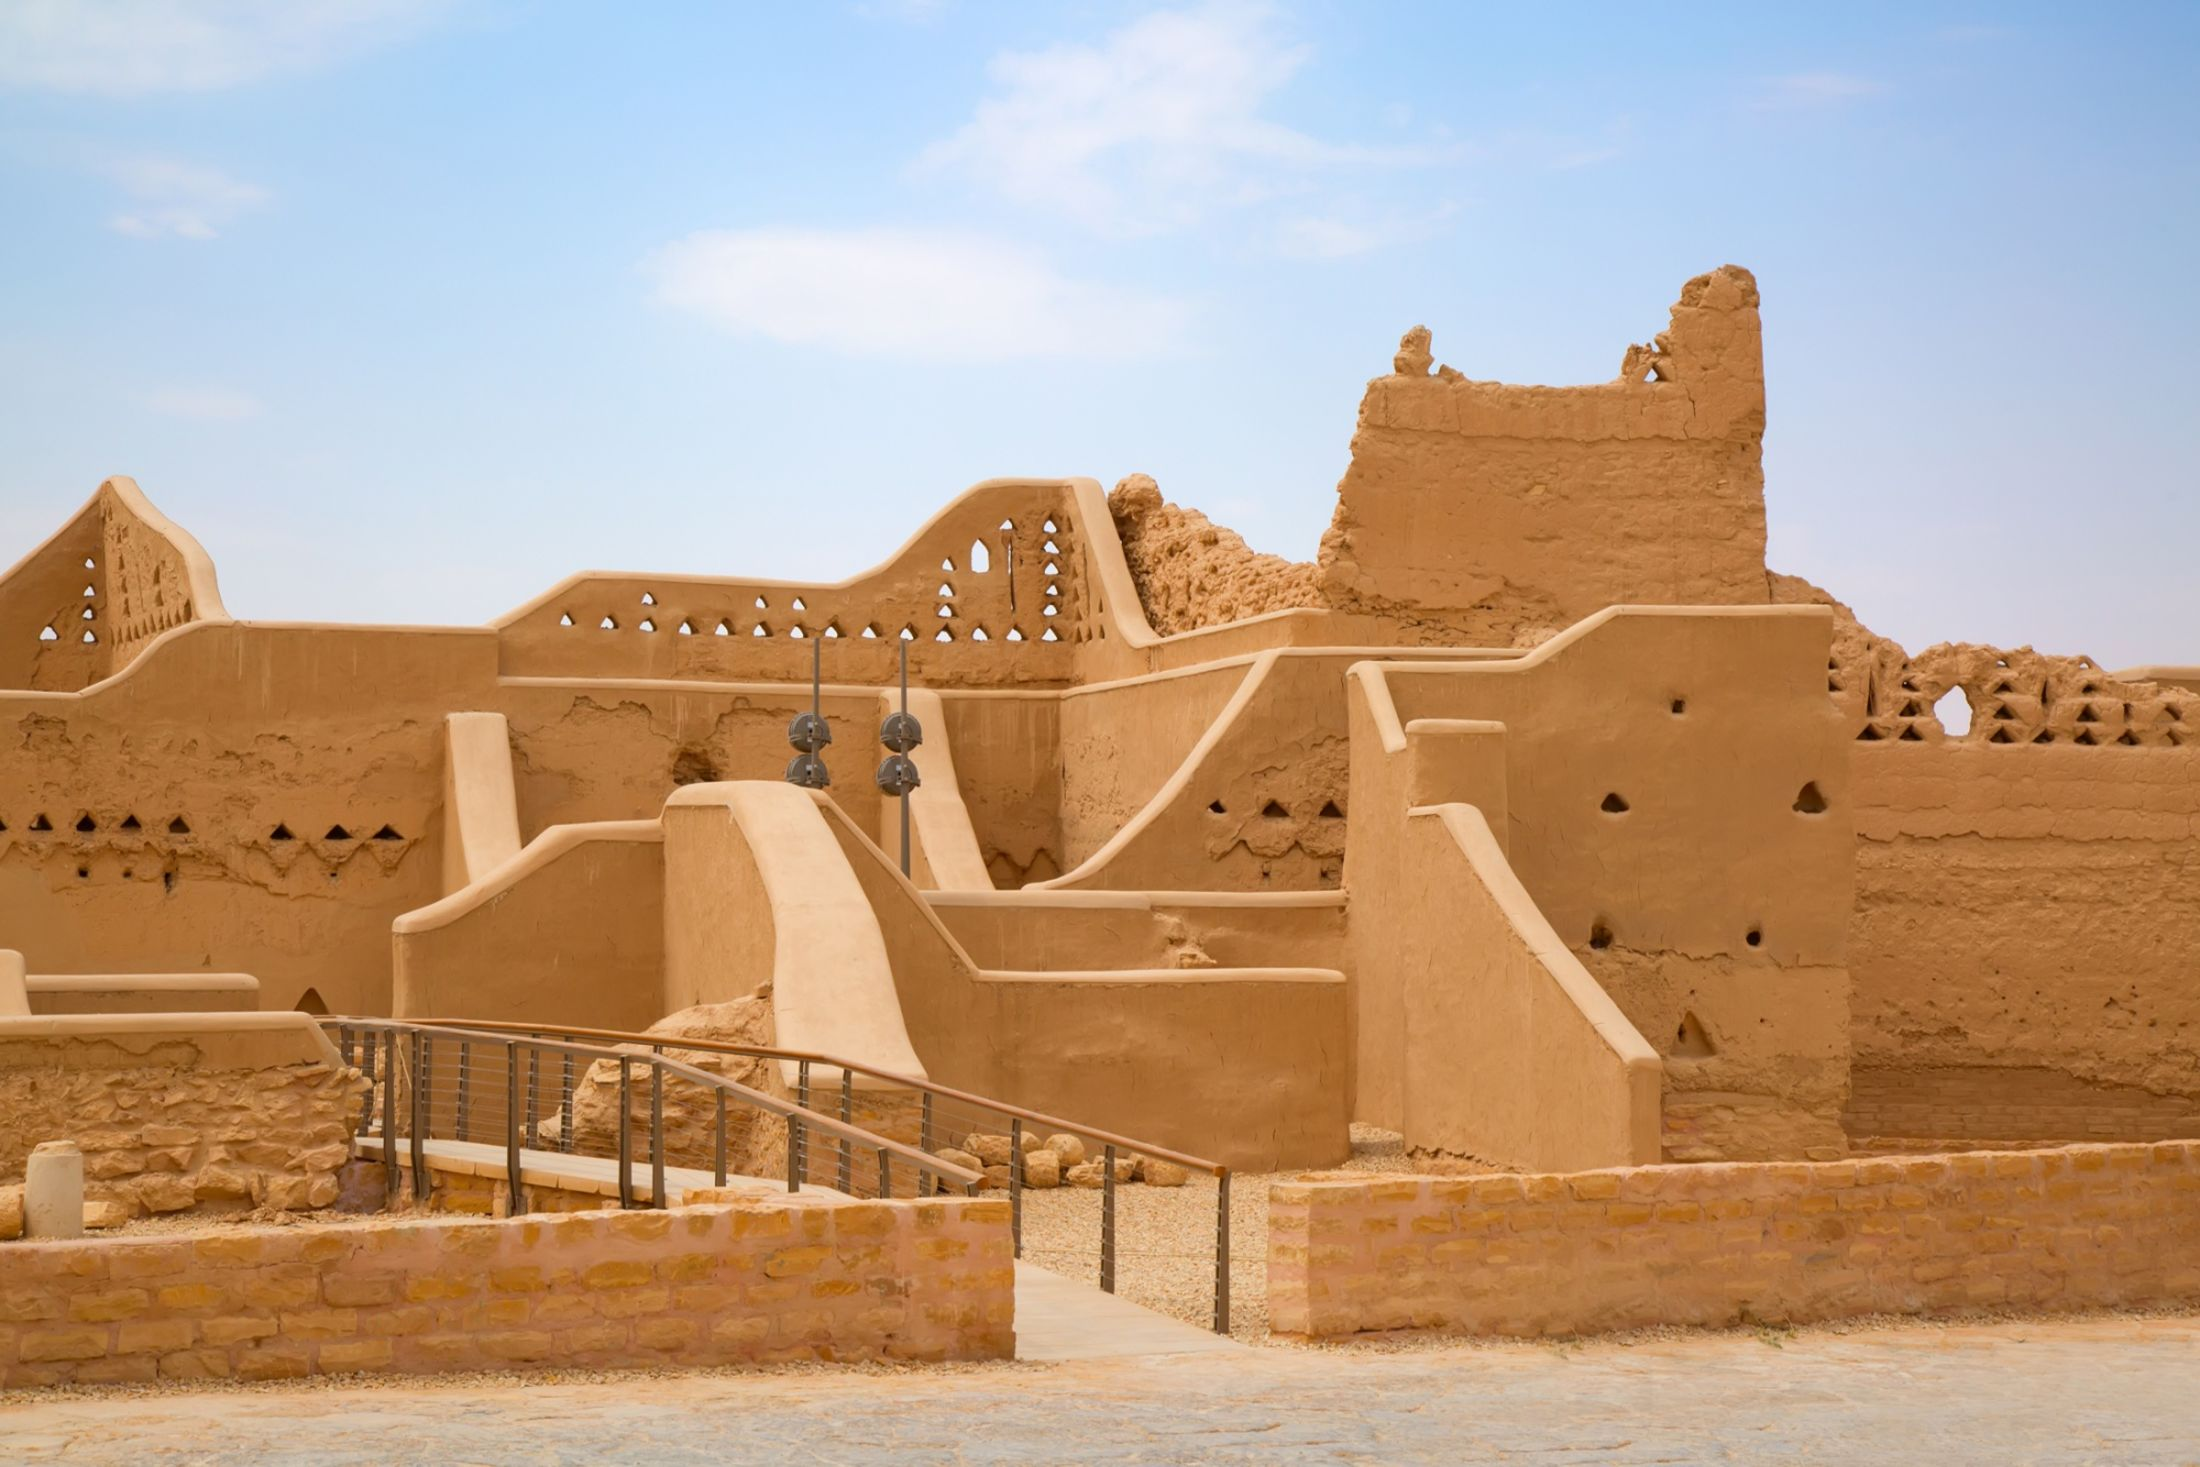 The old city of Diriyah near Riyadh.